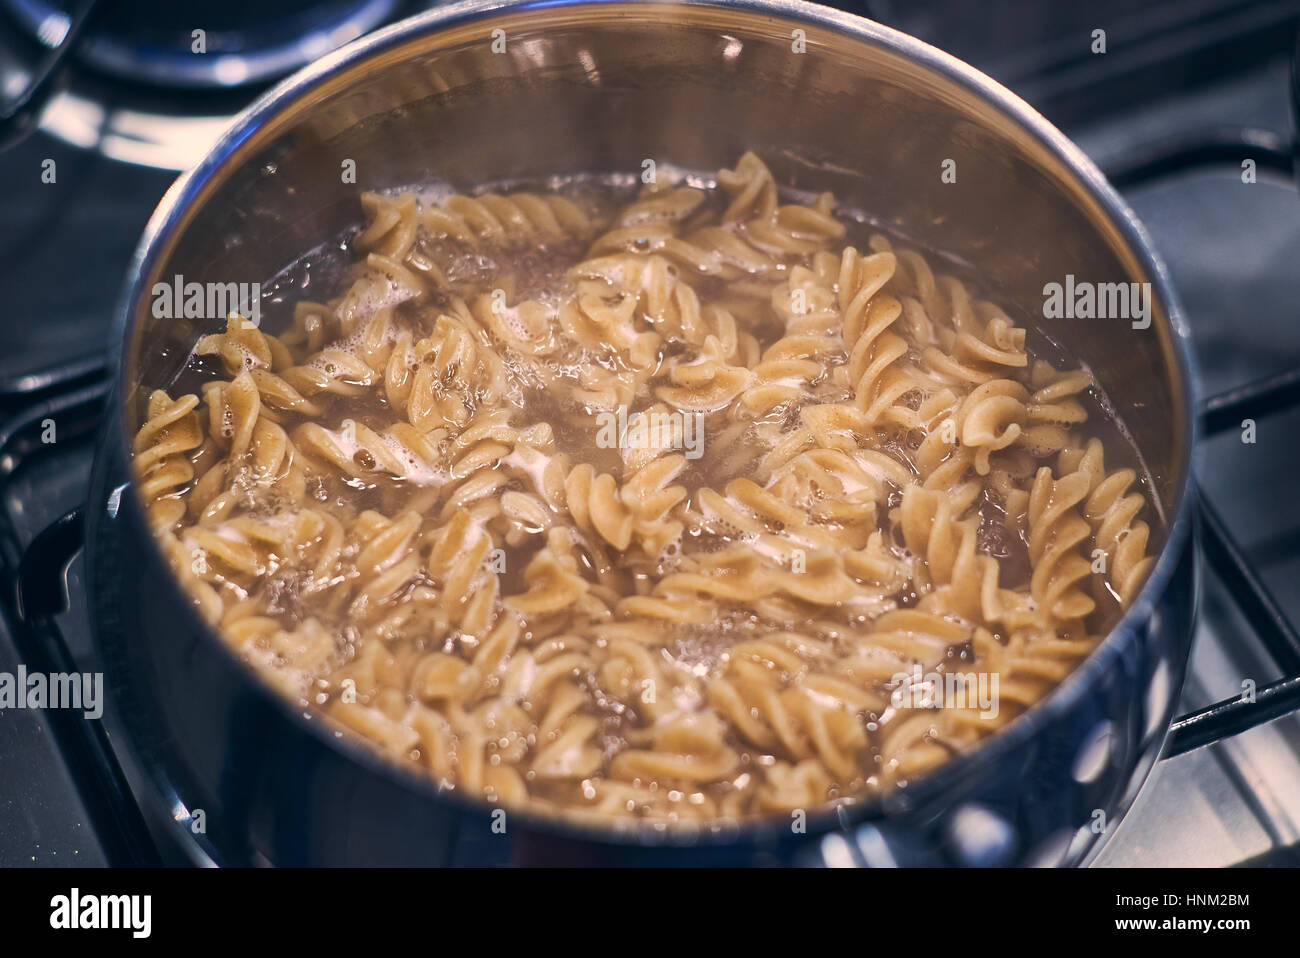 Boiling Wholemeal Pasta cooking in a saucepan on the stove - Stock Image